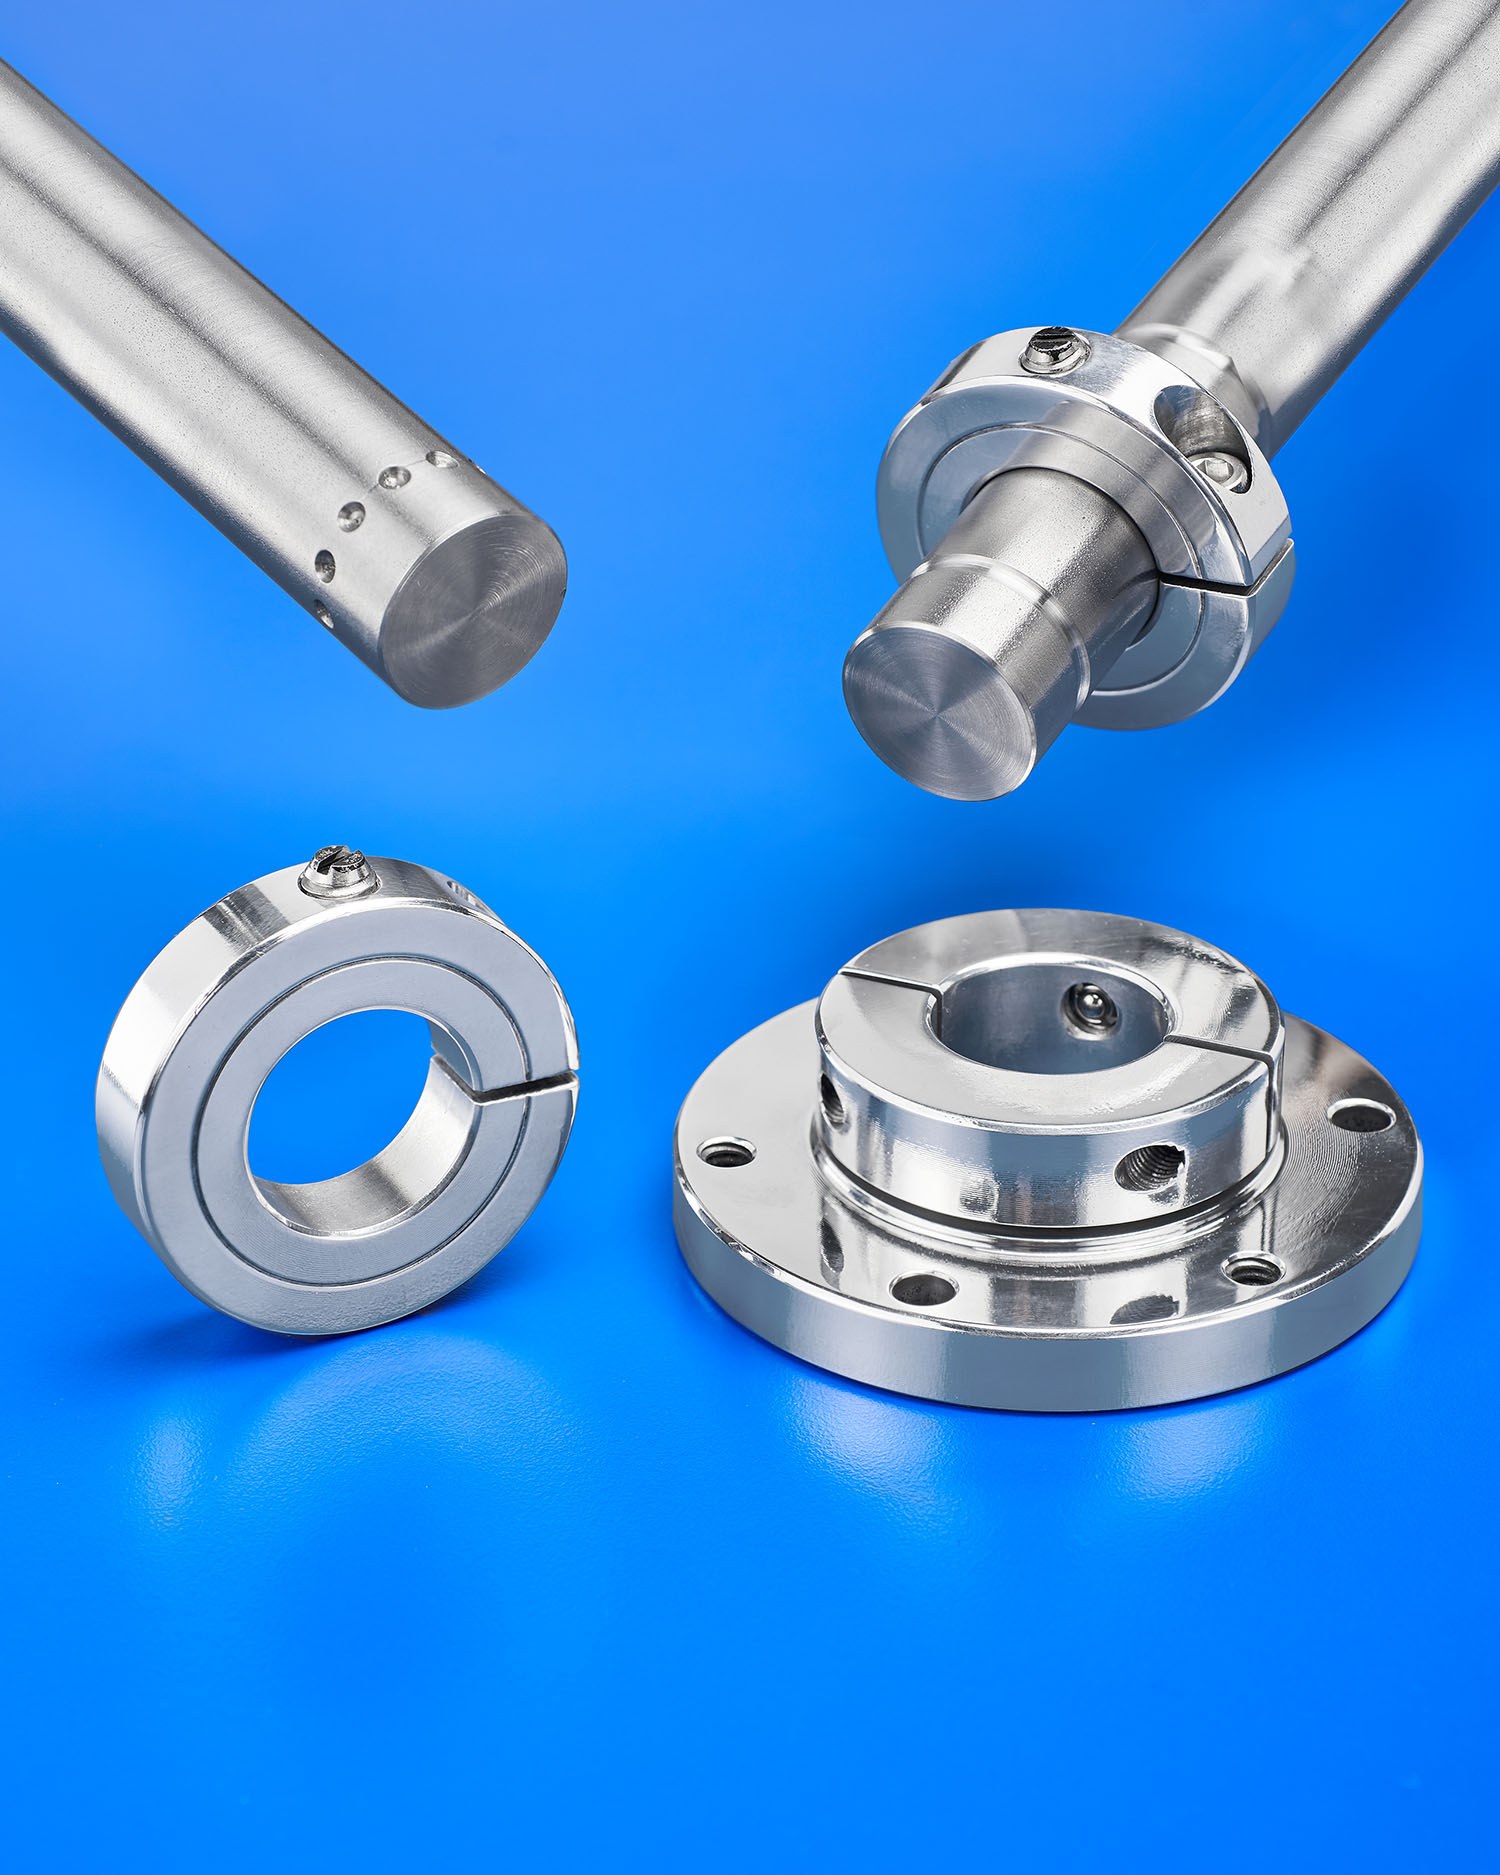 Stafford positioning shaft collars are designed for